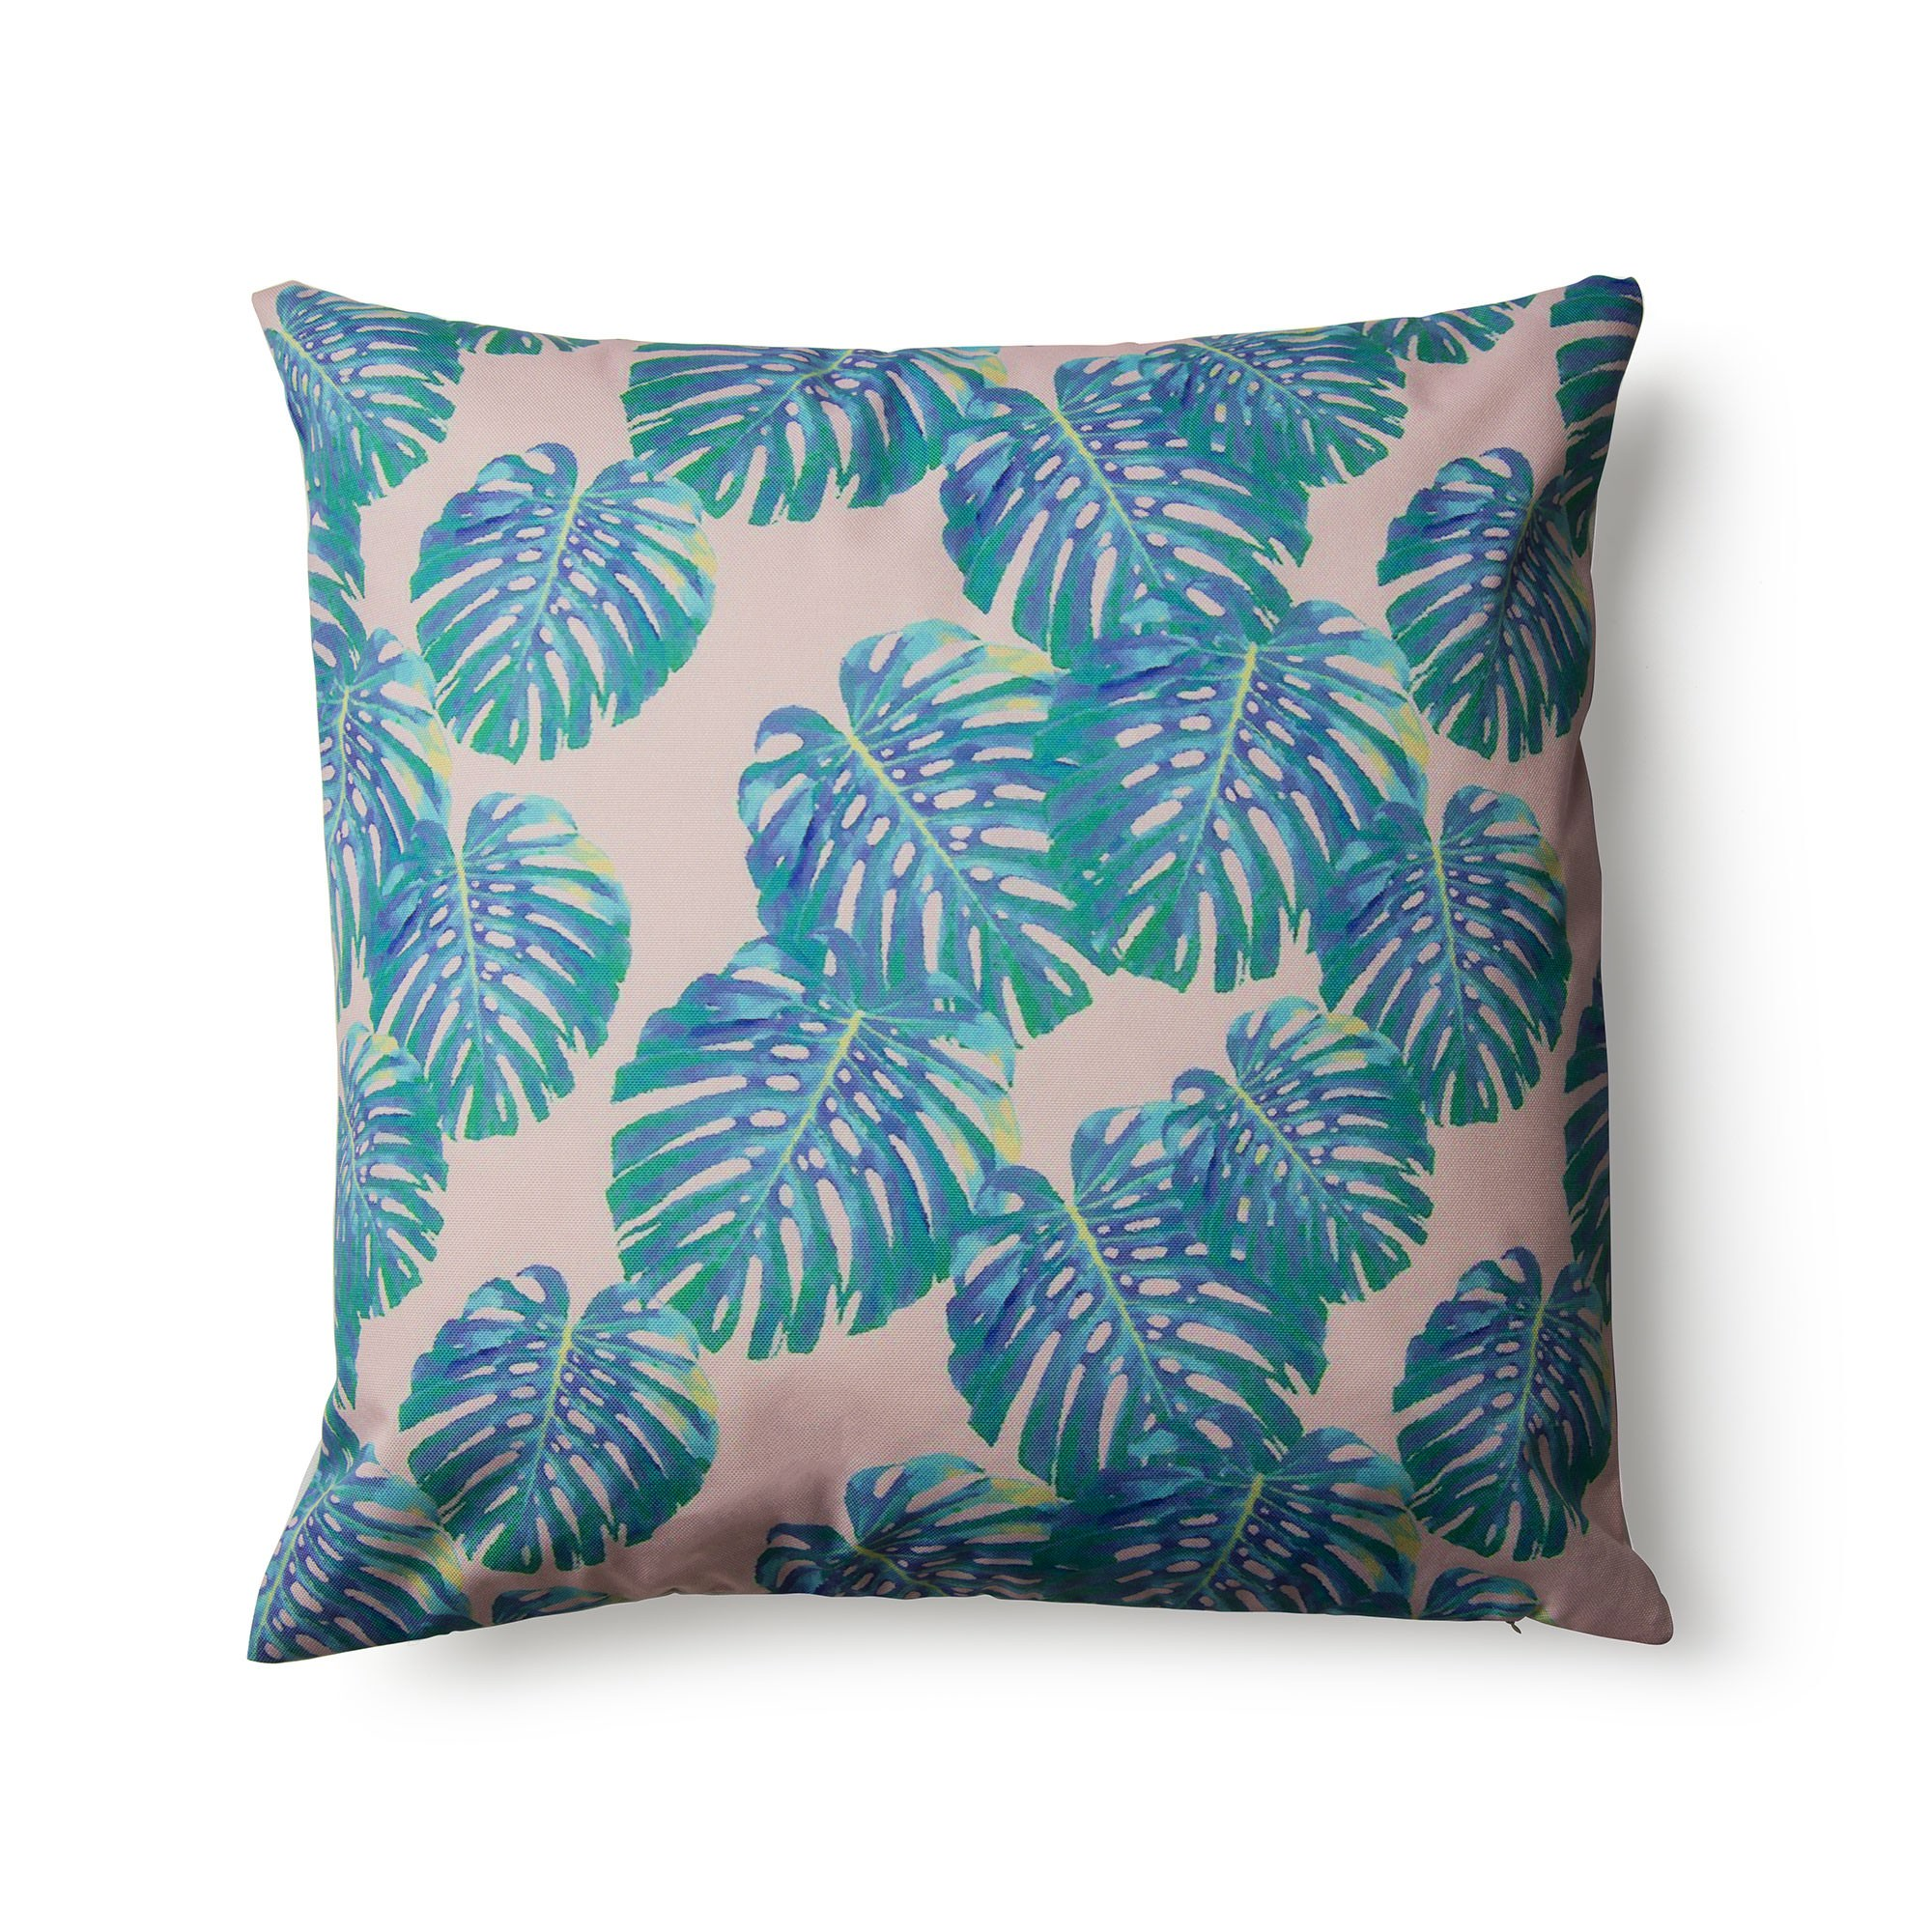 Mandoo Indoor / Outdoor Fabric Scatter Cushion